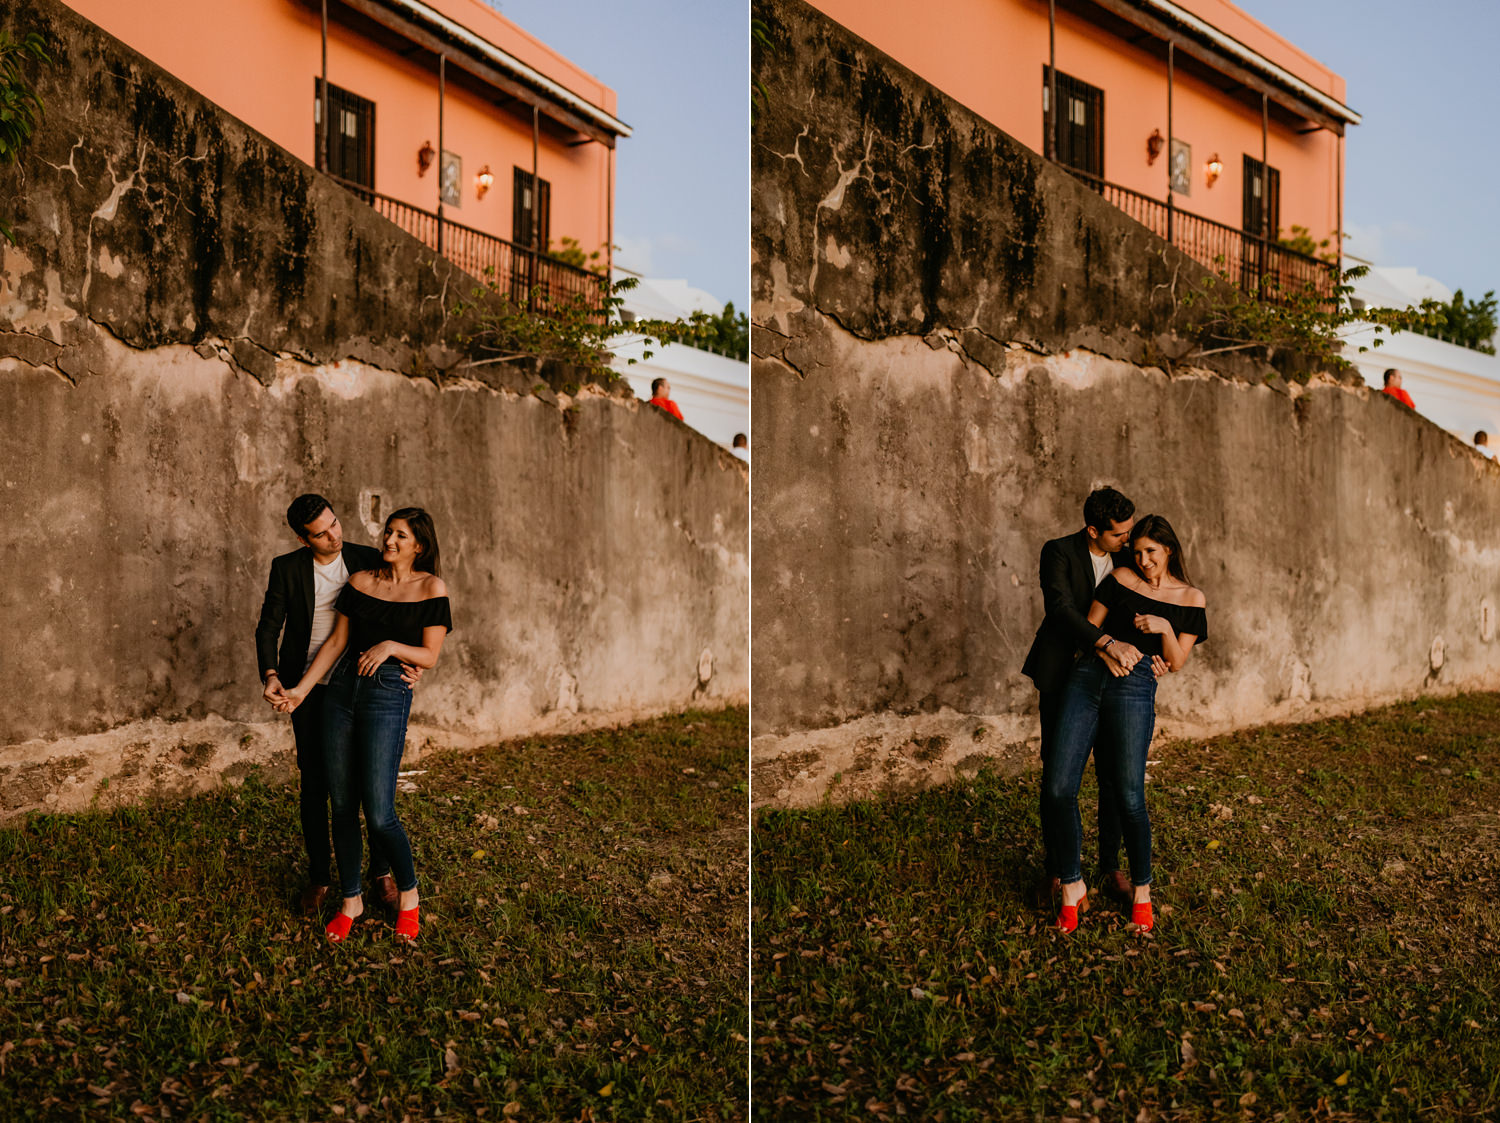 couple holding each other in front of stone wall during sunset lighting